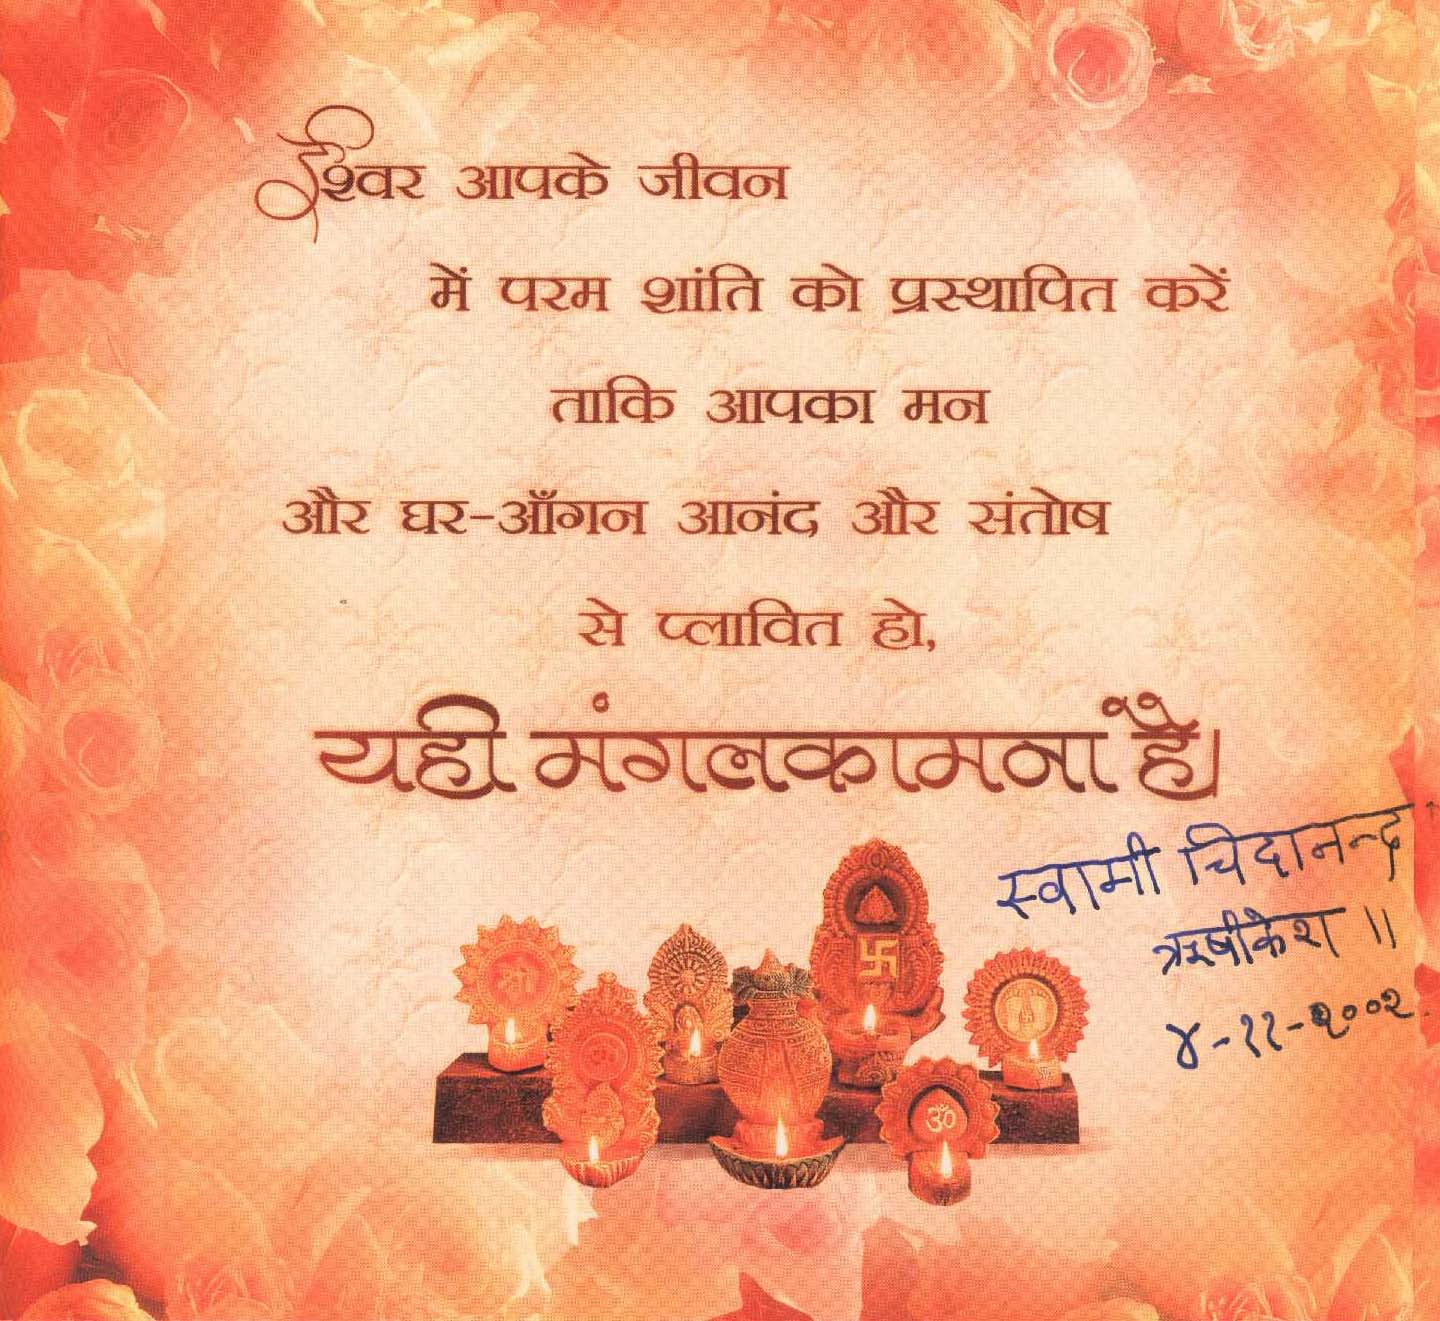 Diwali Greetings From Swami Chidanandaji President Of The Divine